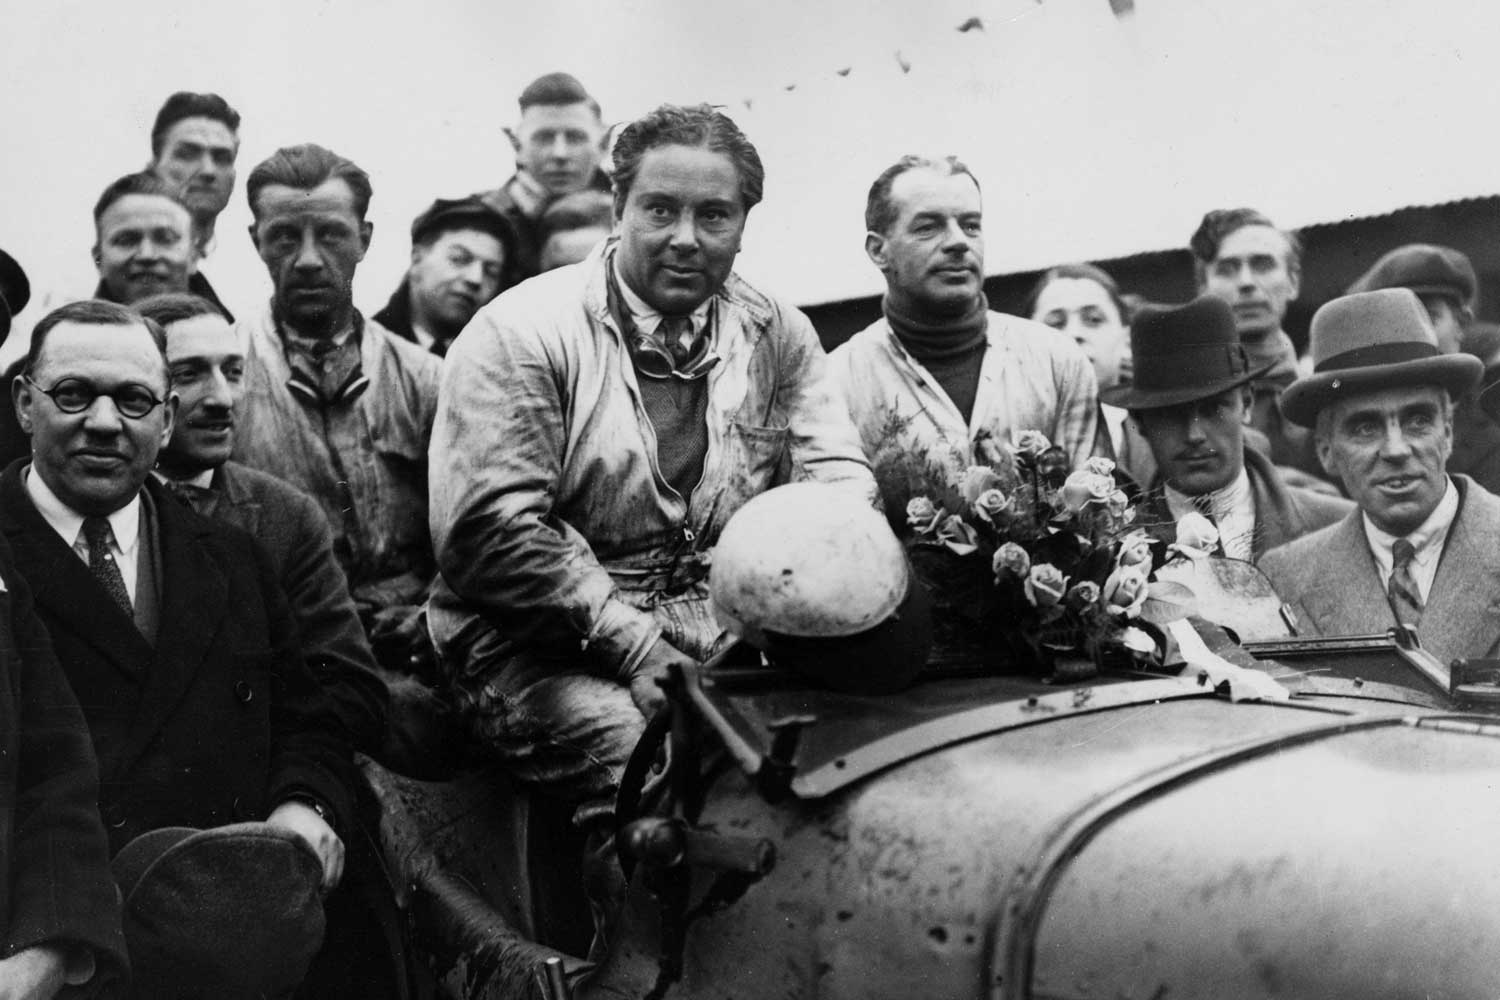 1930: Woolf Barnato (centre) and F O Clement in their Bentley after winning the Double Twelve Race at Brooklands. (Photo by Central Press/Hulton Archive/Getty Images)